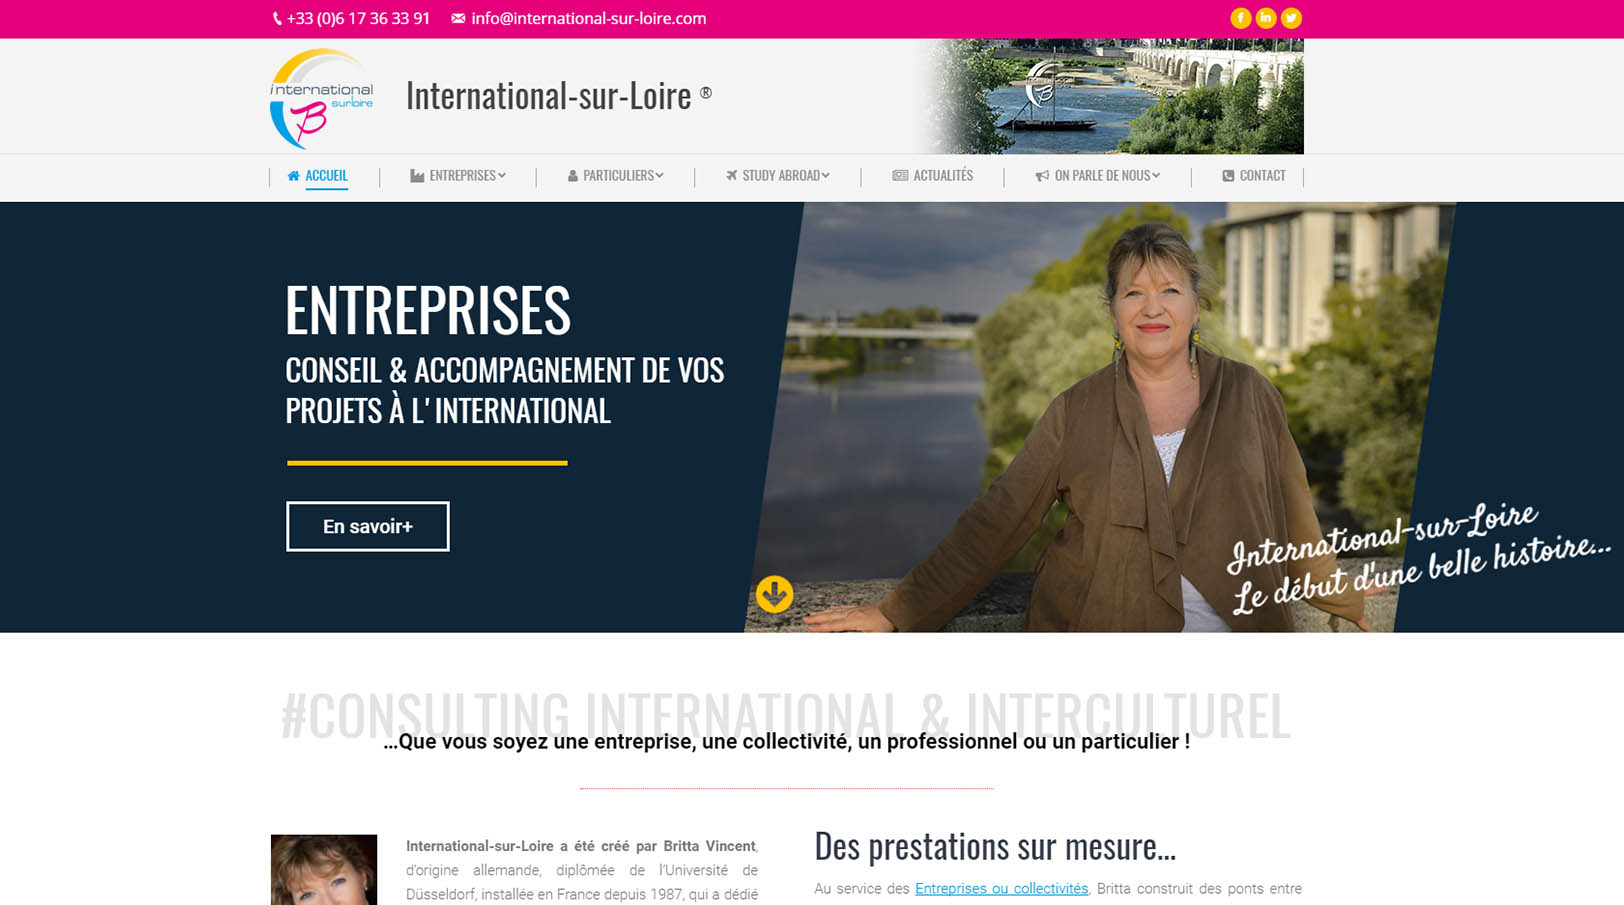 INTERNATIONAL-SUR-LOIRE